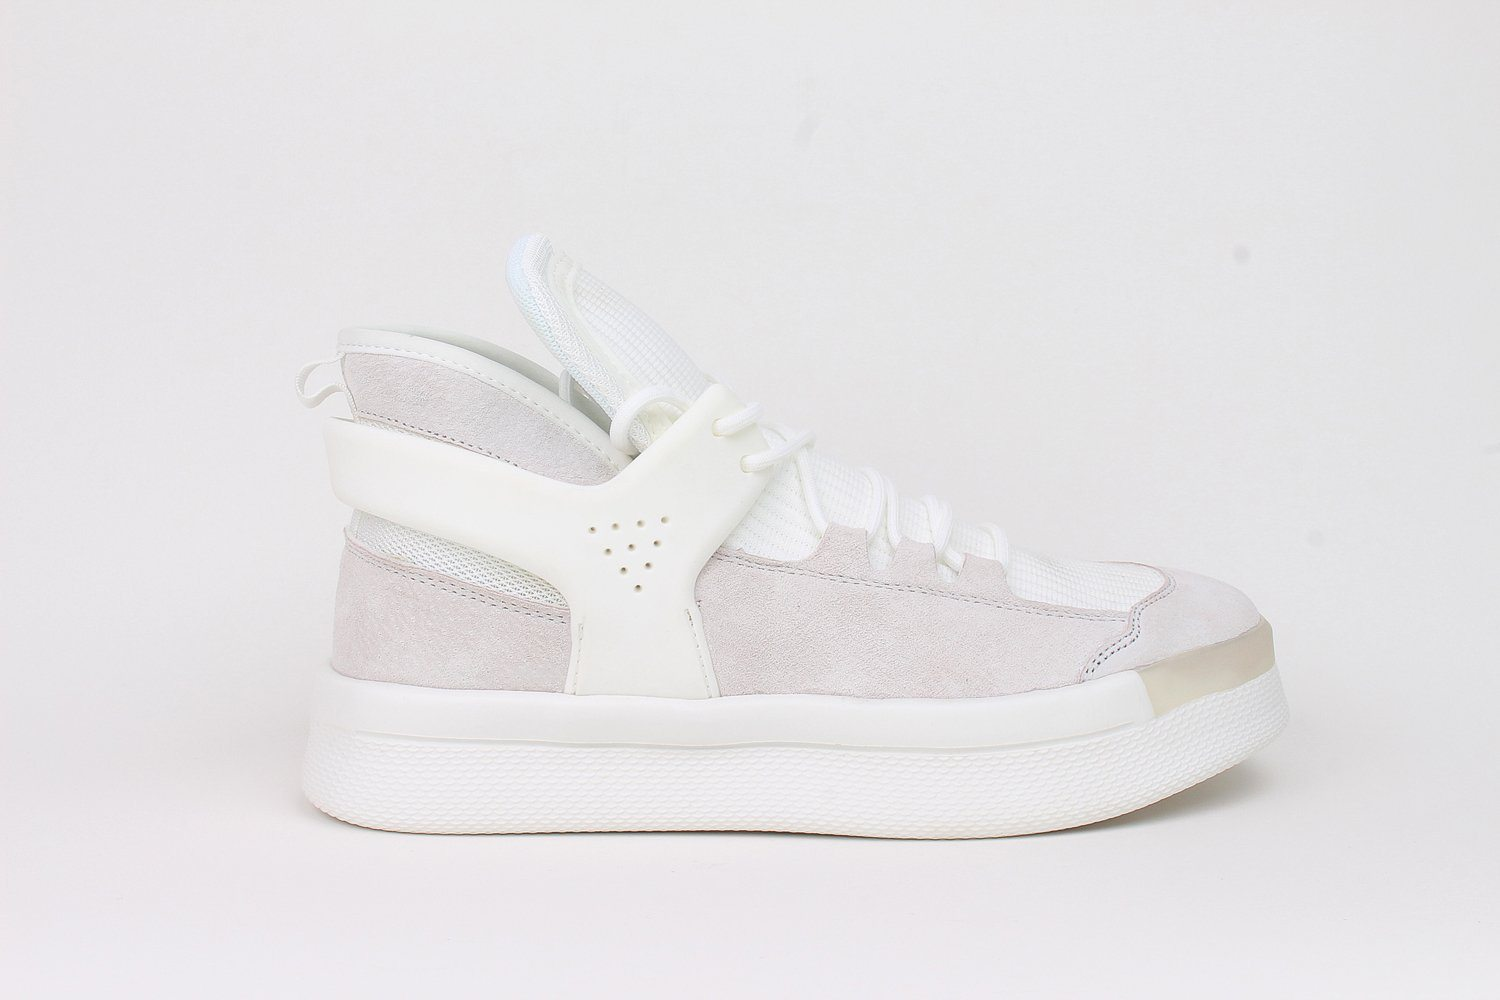 Middle Boots White Fabric Fashion Sneaker